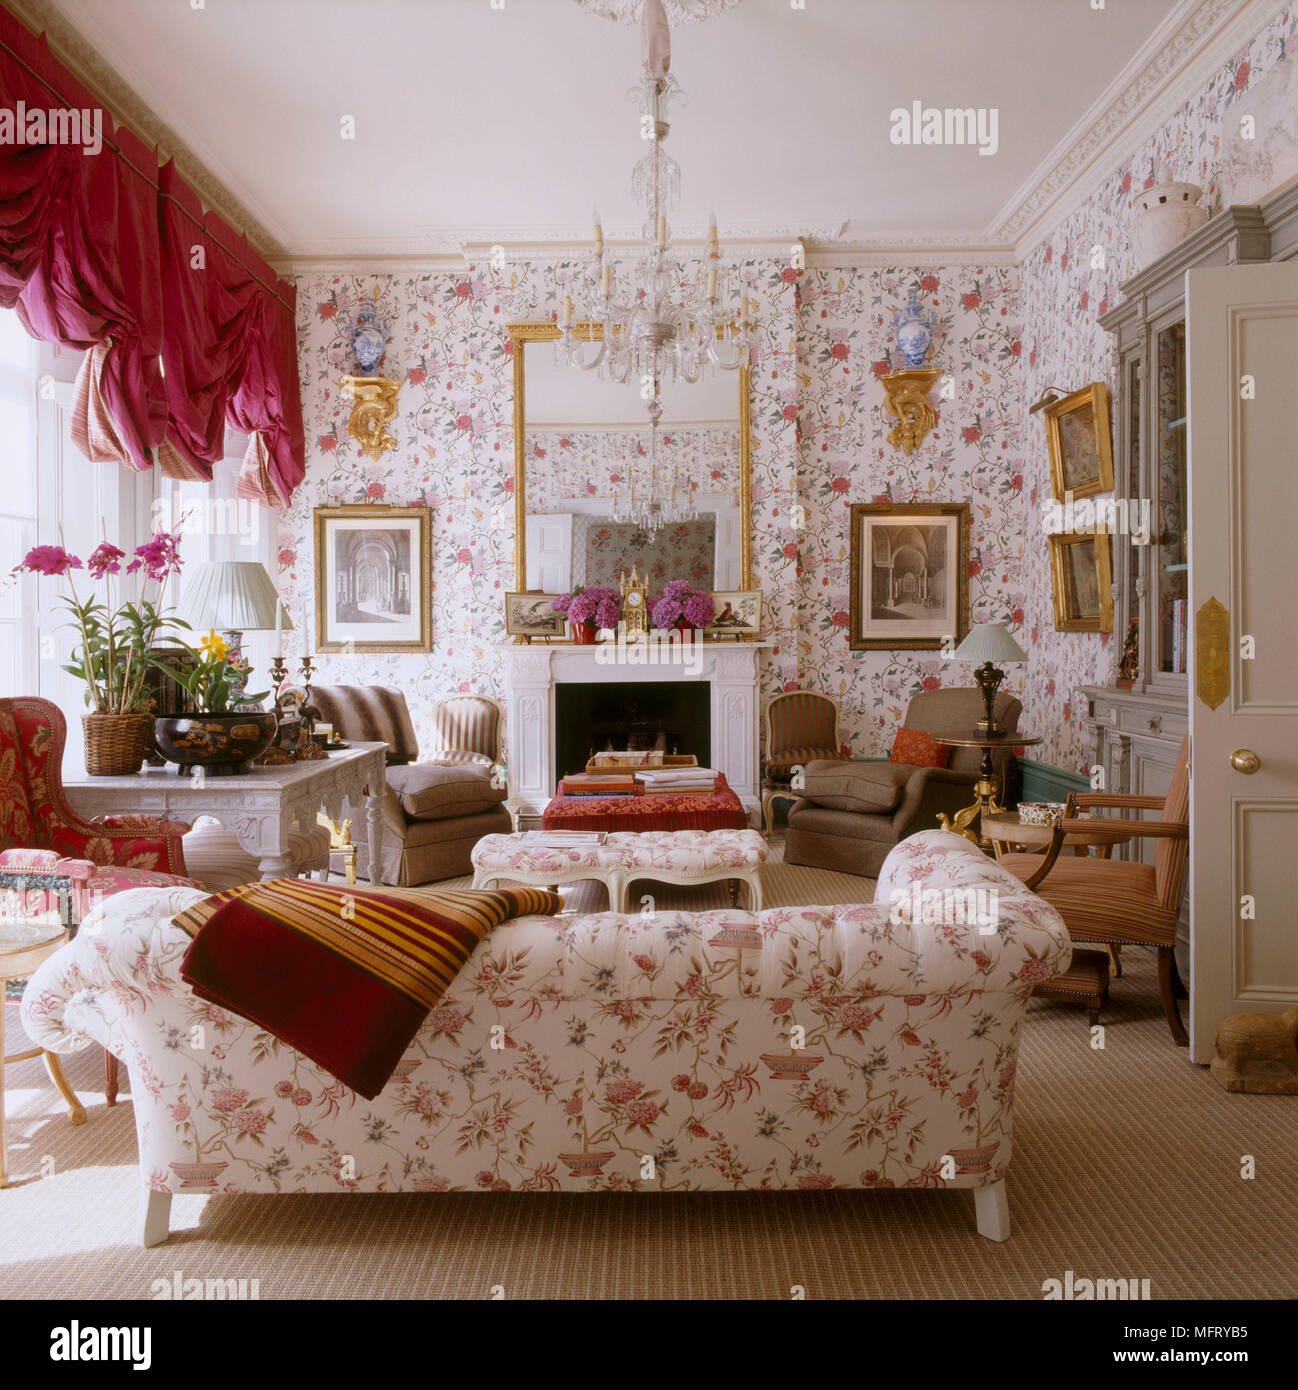 A Grand Traditional Sitting Room With Fireplace Red Floral Wallpaper  Upholstered Sofa Swag Curtains